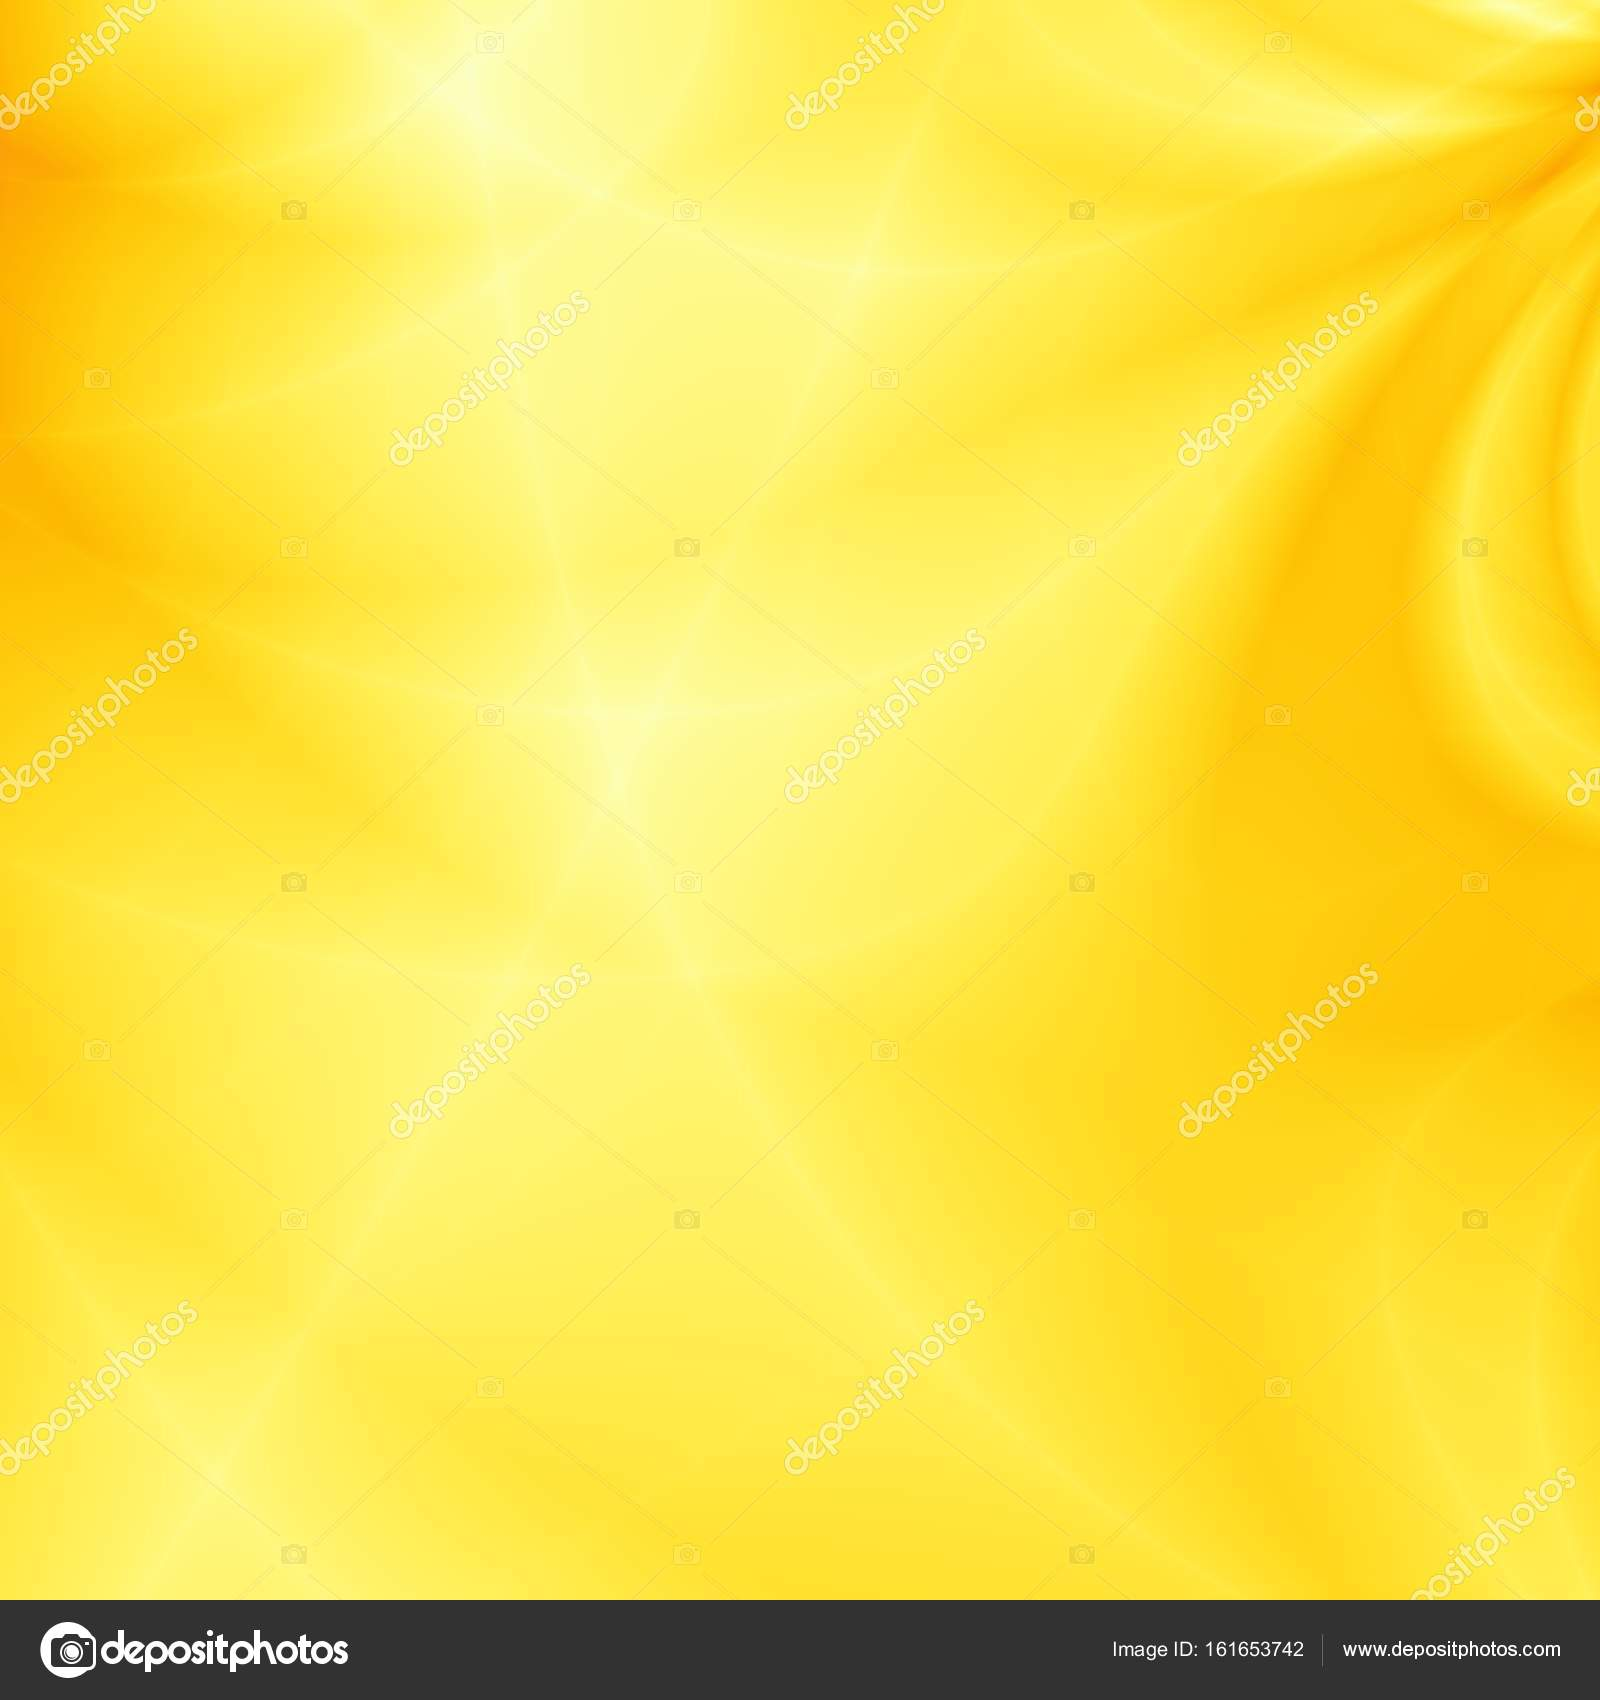 Wallpaper Sunny Day Background Abstract Sunny Day